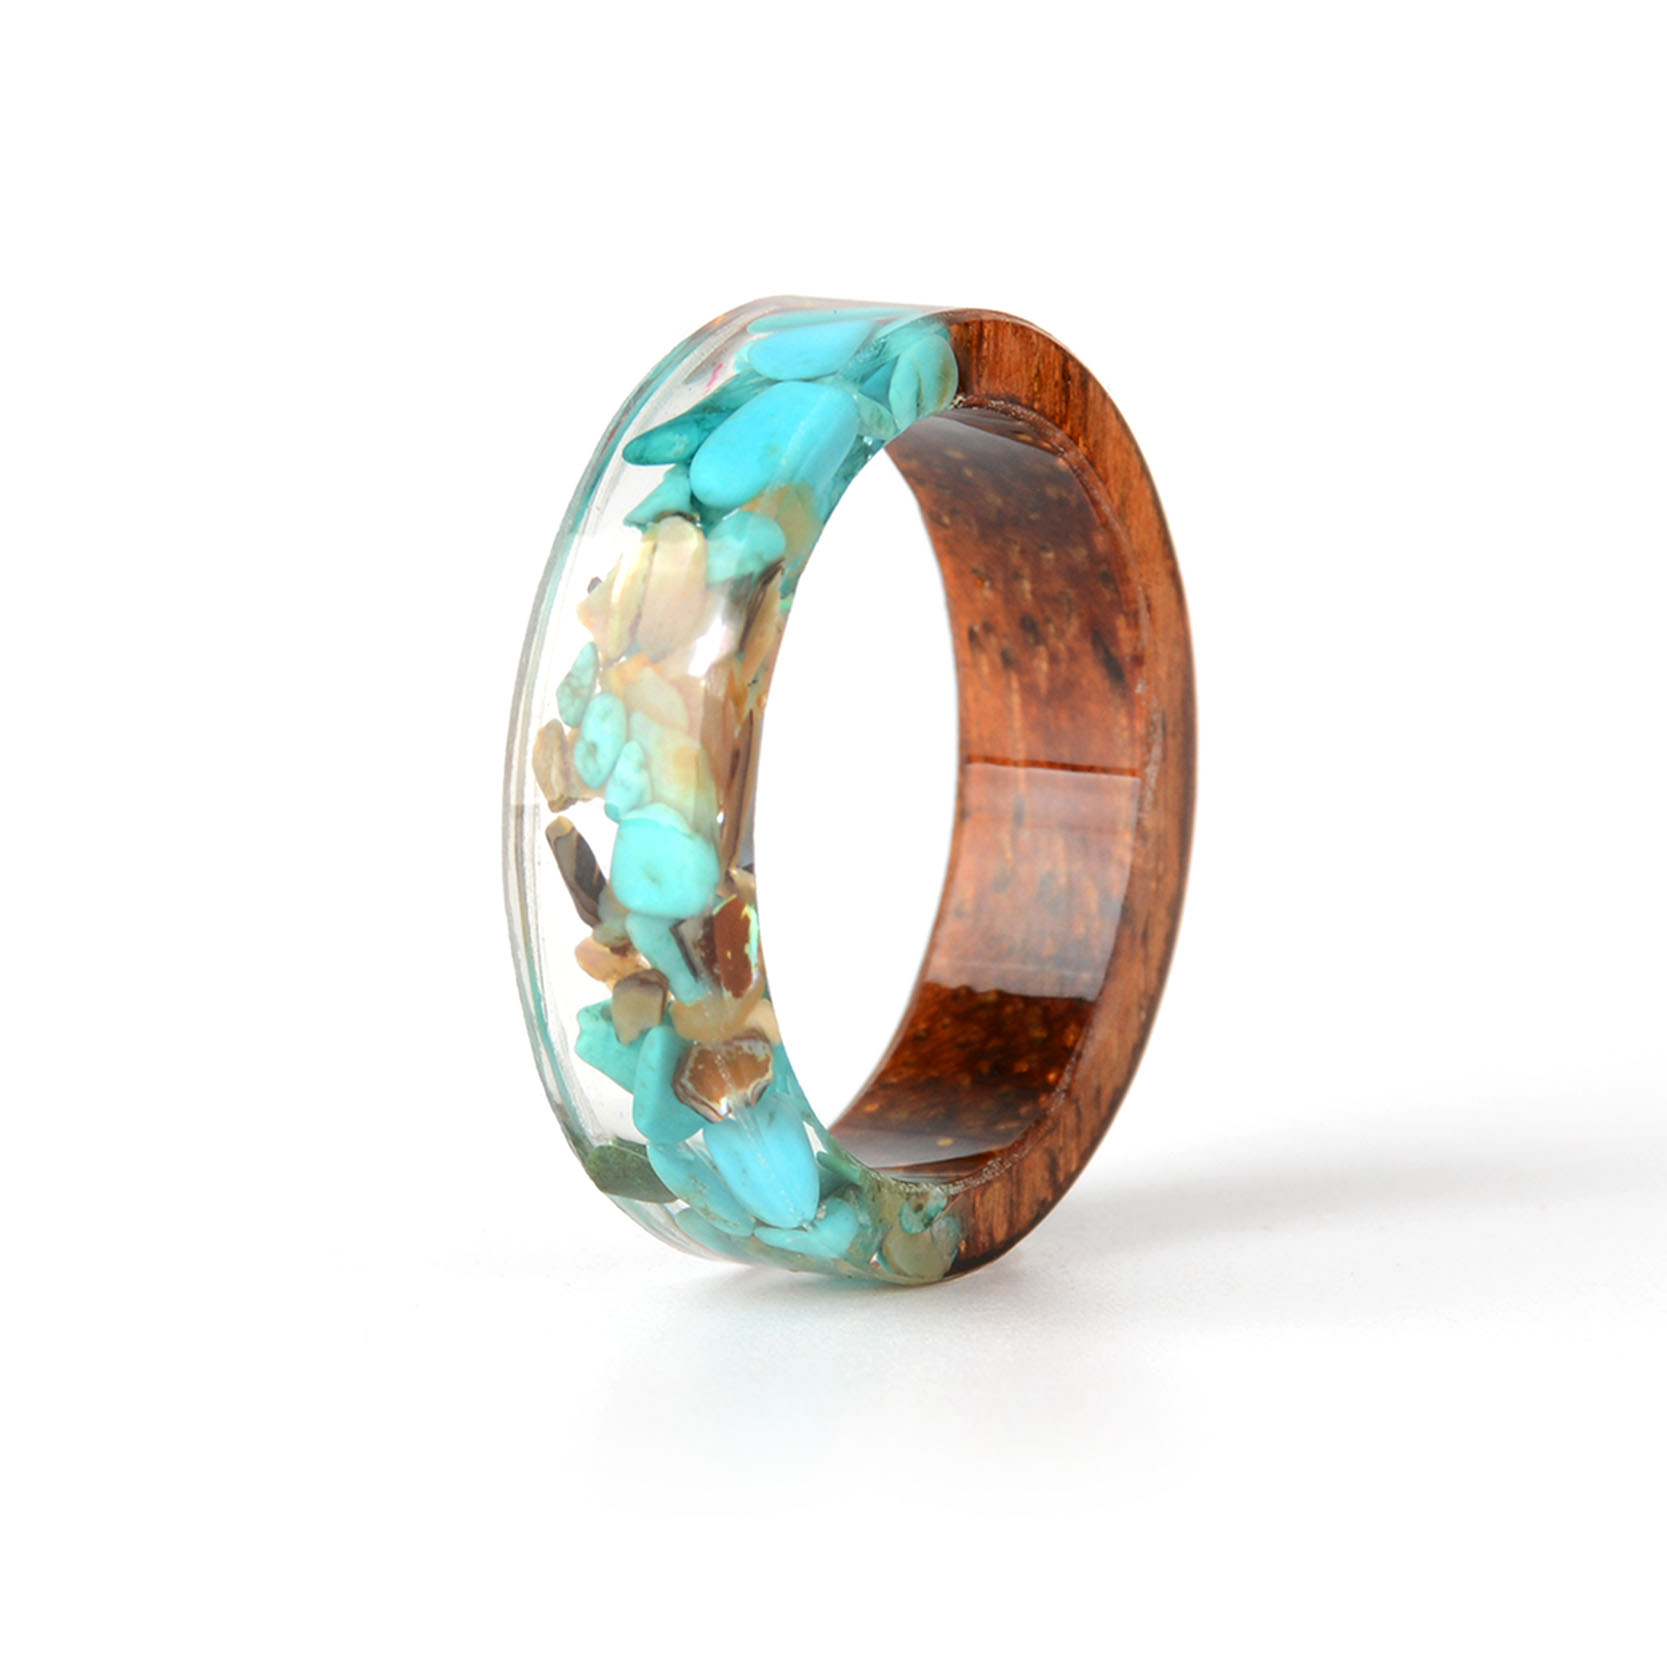 Handmade Wood Resin Ring Many Styles 25